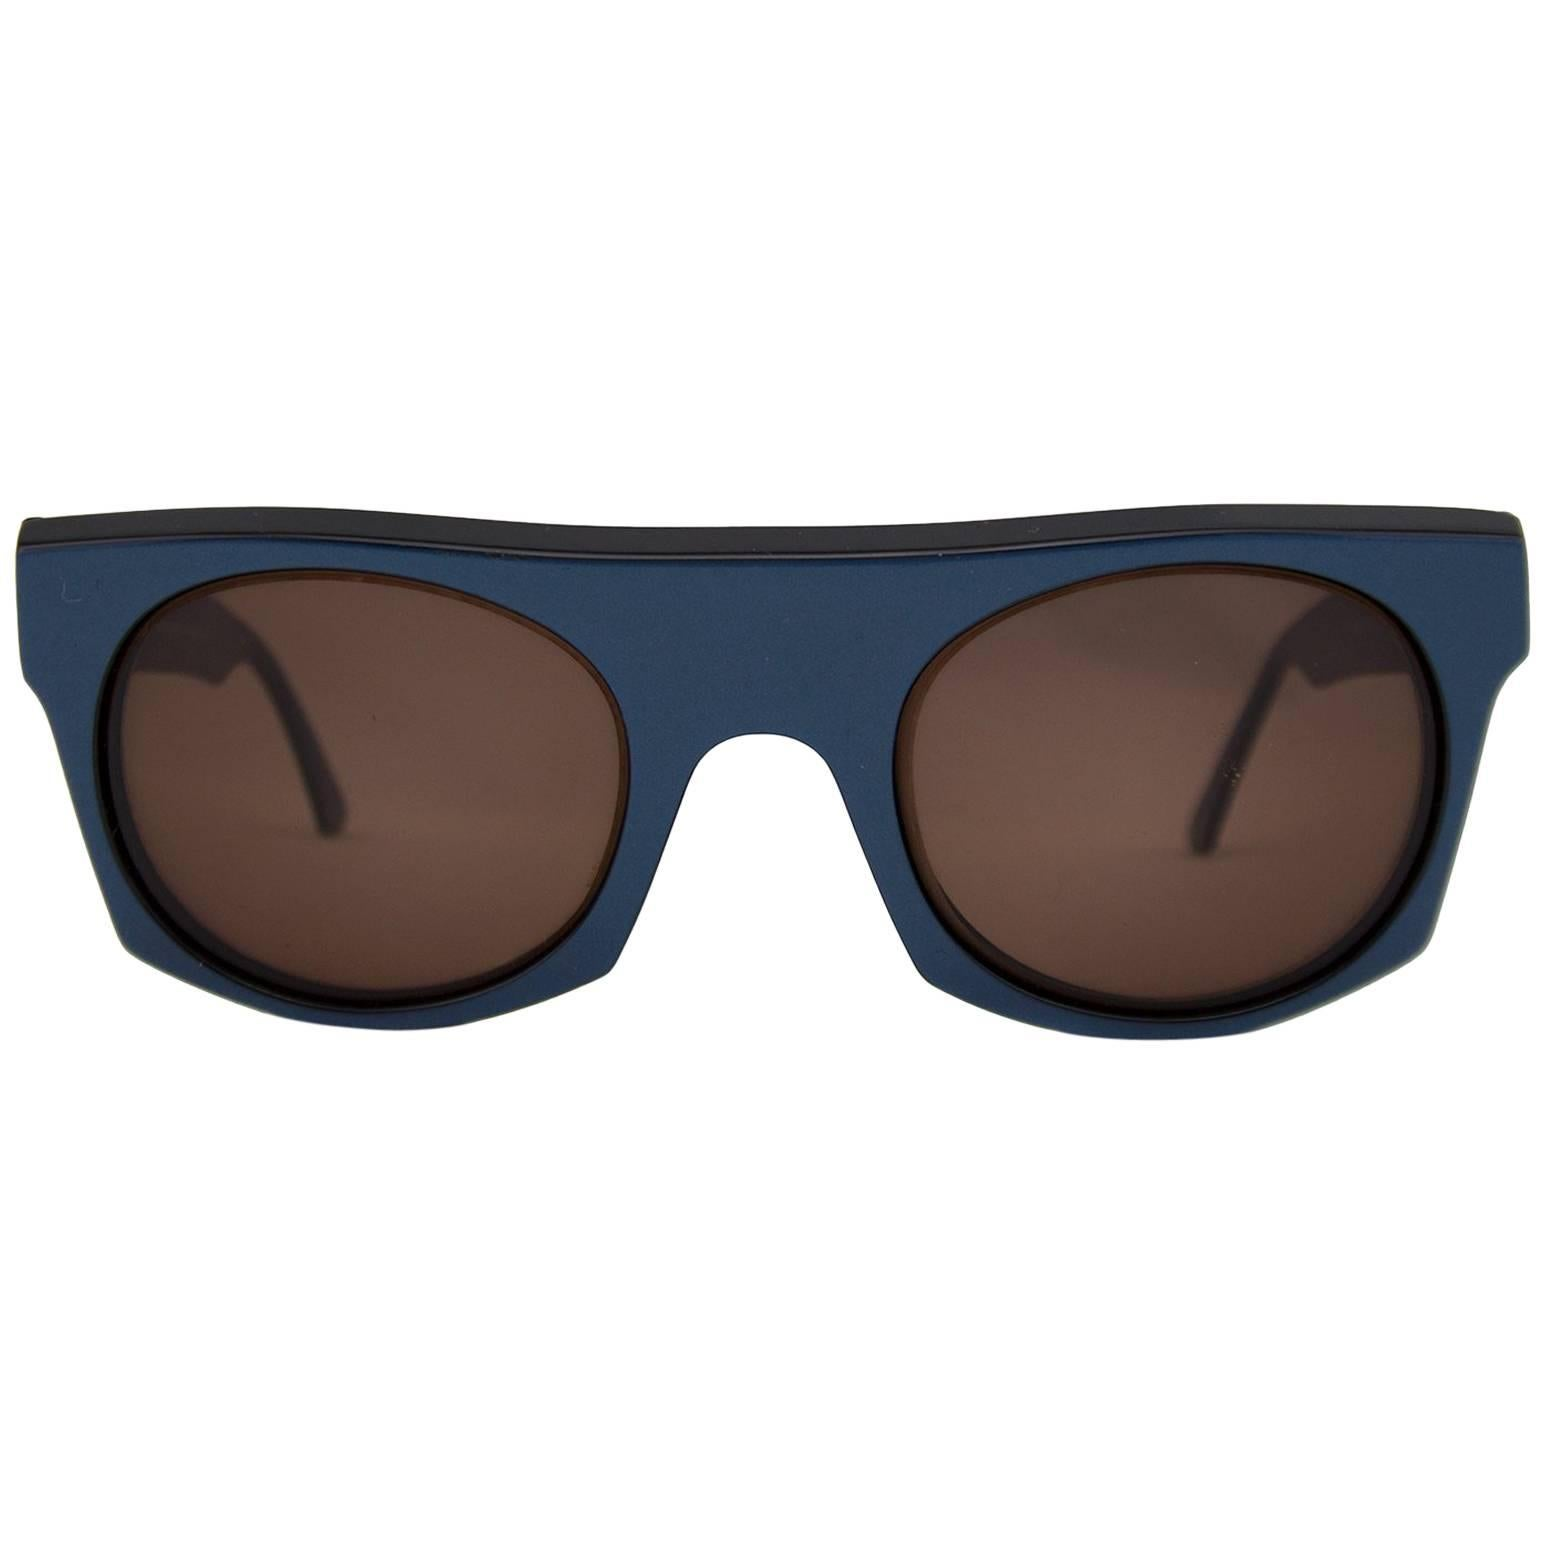 233857d595 Black Sunglasses at 1stdibs - Page 4